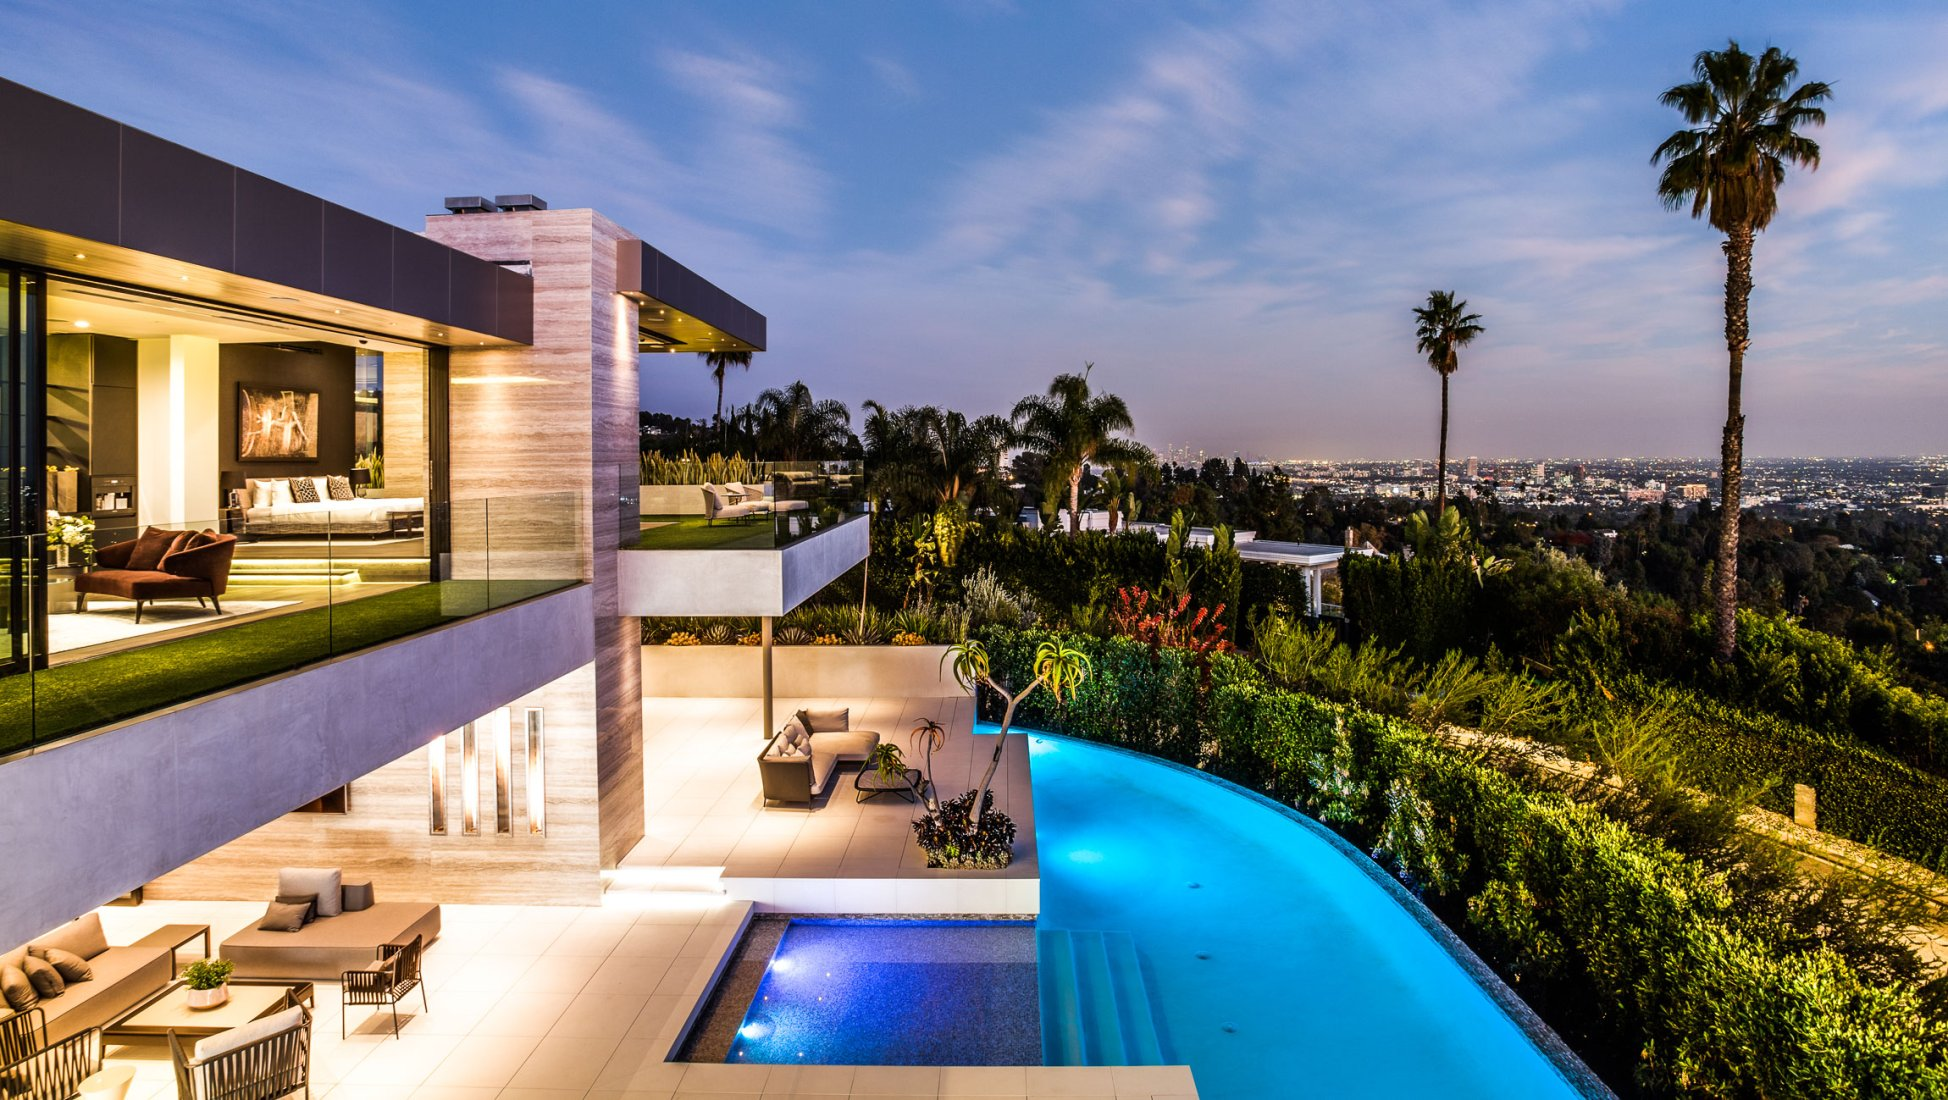 YouTube's Jaclyn Hill Settles Into $20 Million Rental Mansion